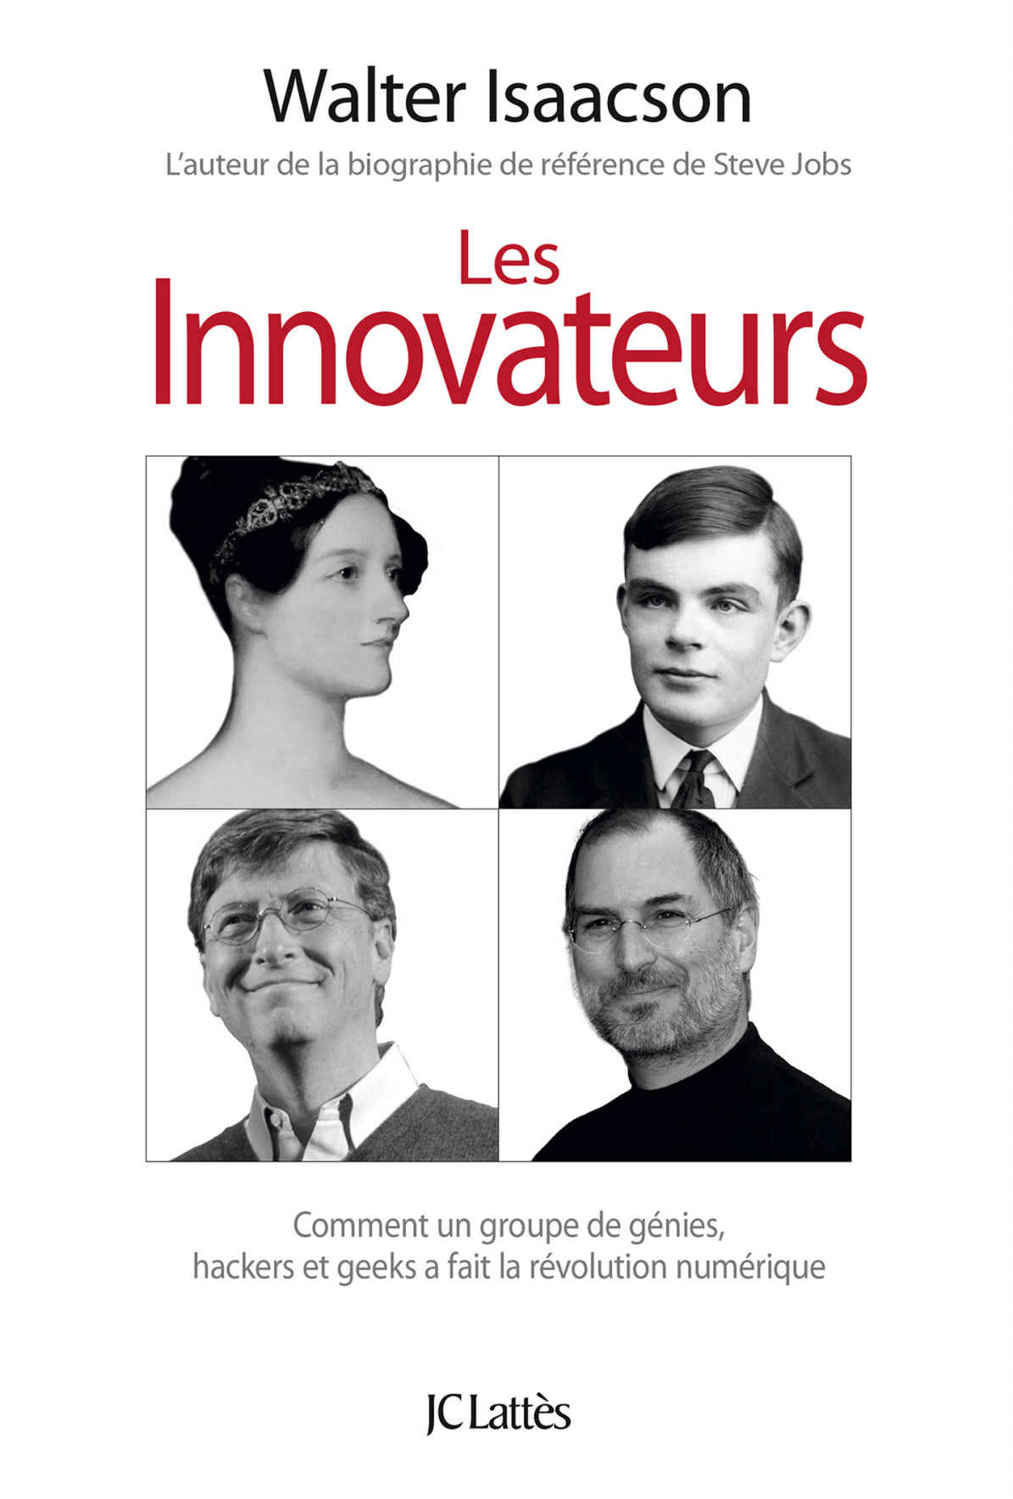 Walter Isaacson - Les innovateurs